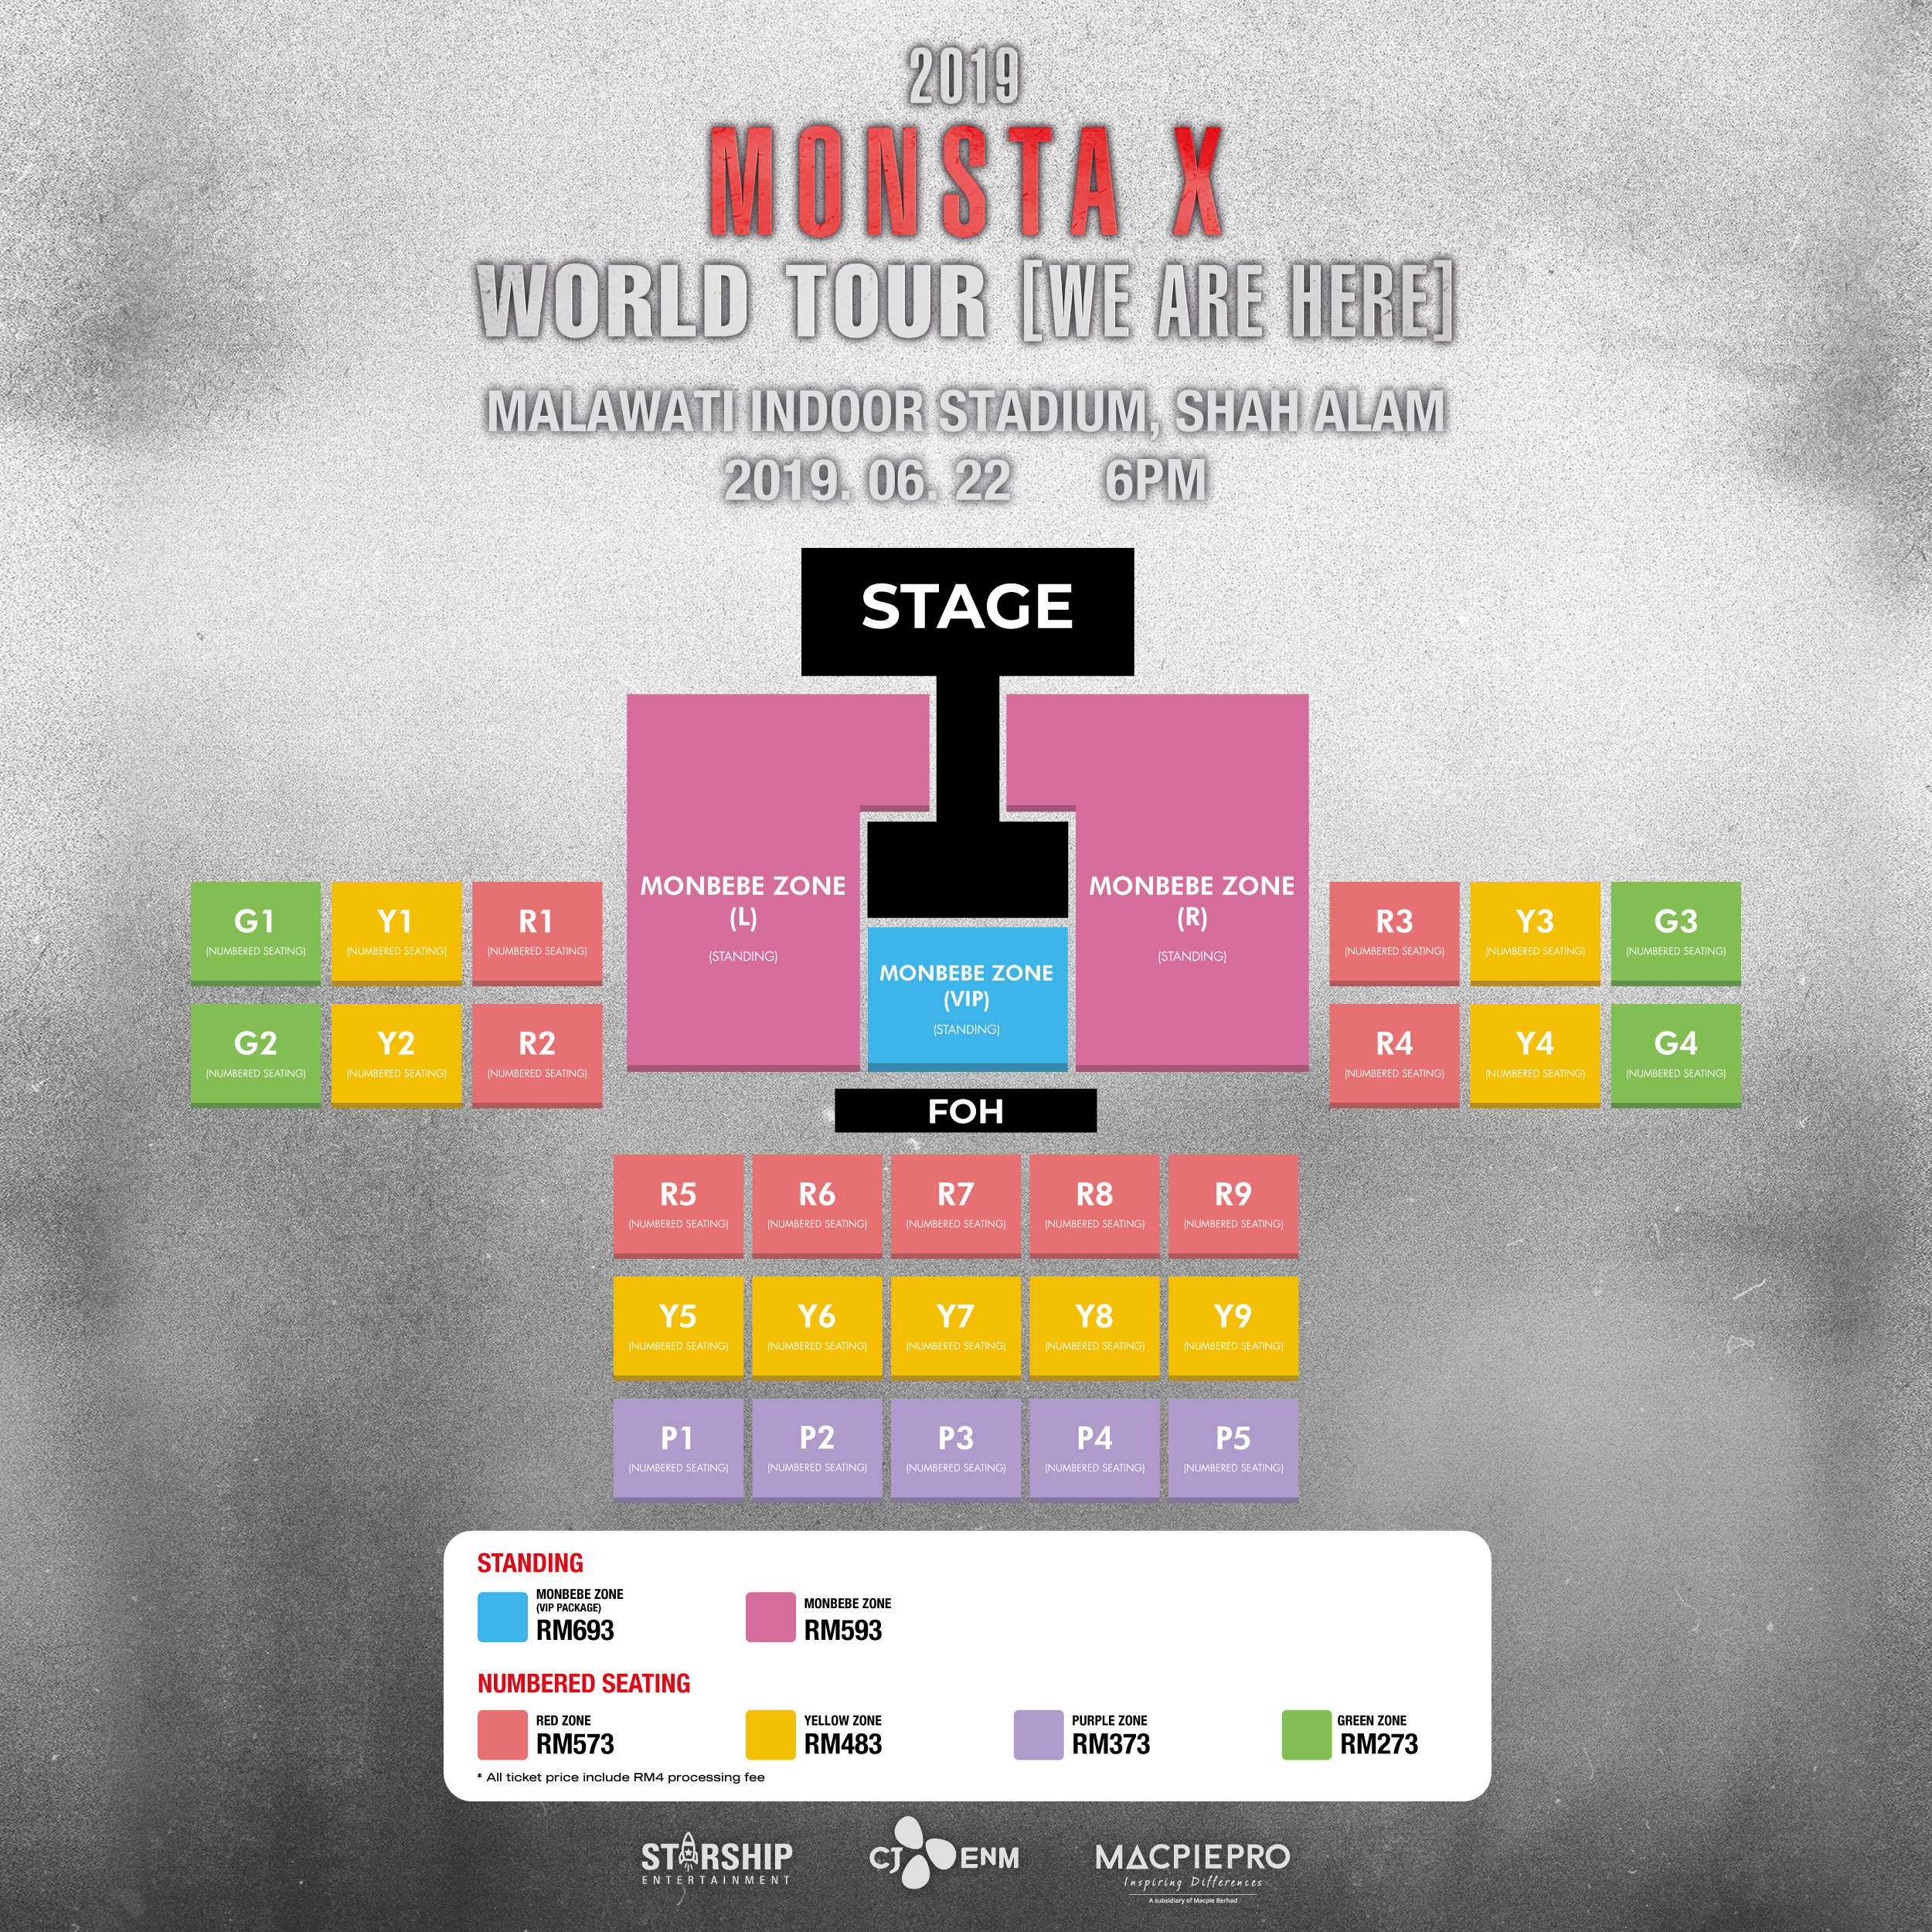 CONTEST] Win Tickets To MONSTA X's Concert In Kuala Lumpur